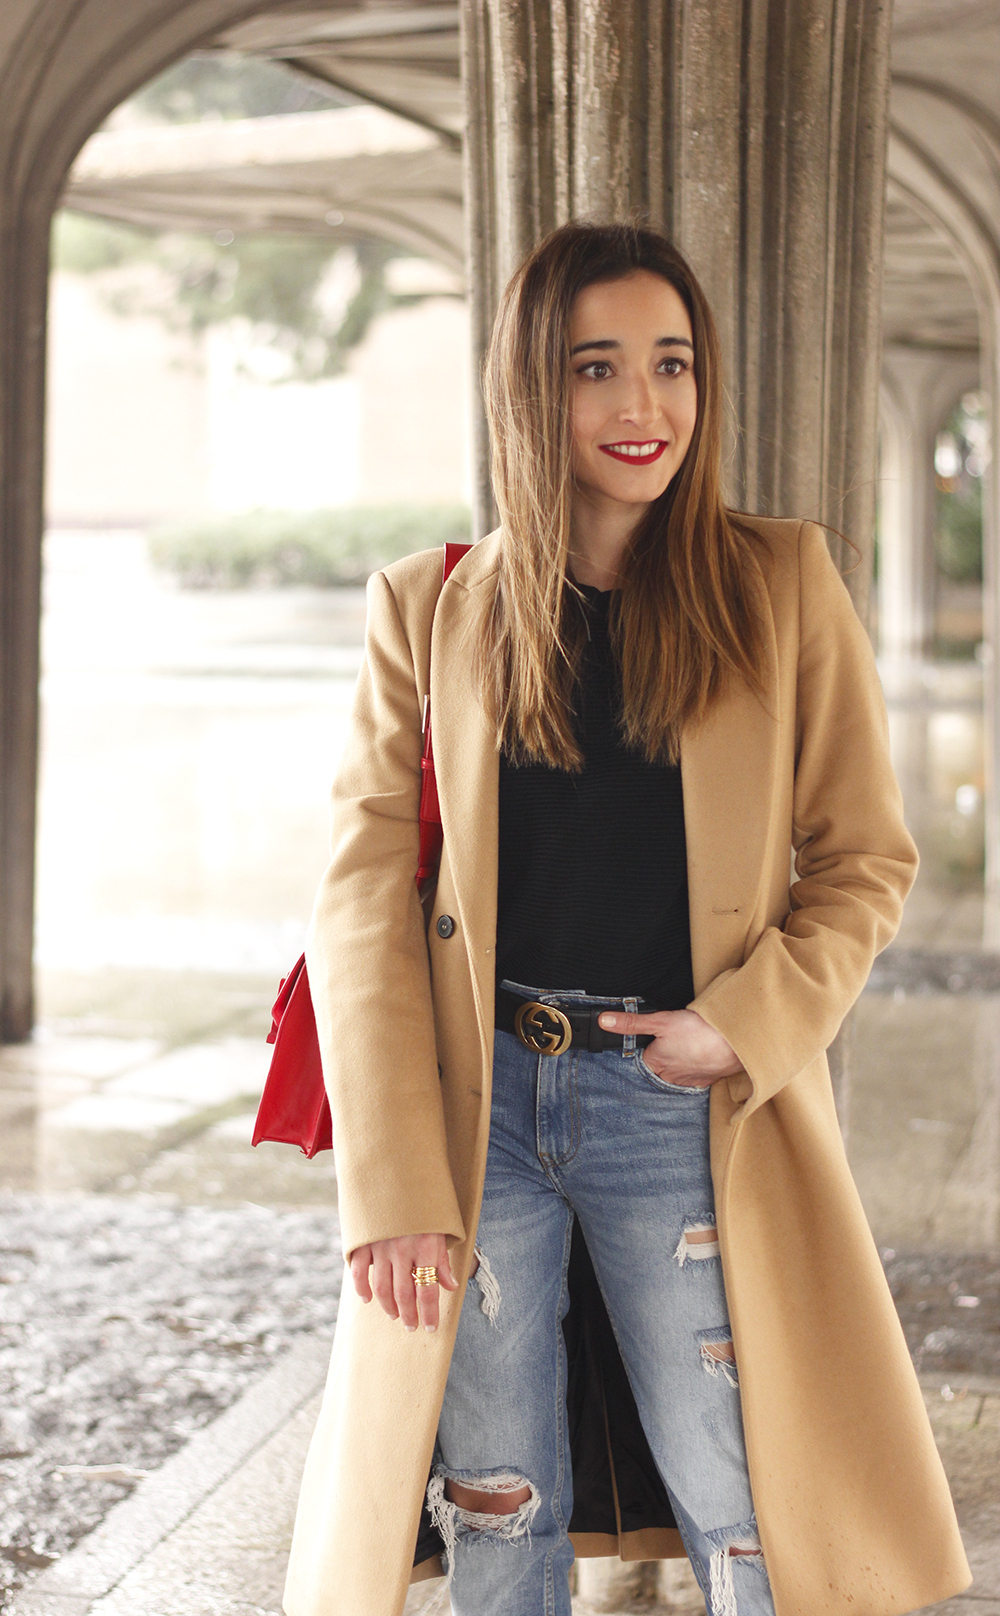 camel coat red valentinobags black outfit winter style fashion08